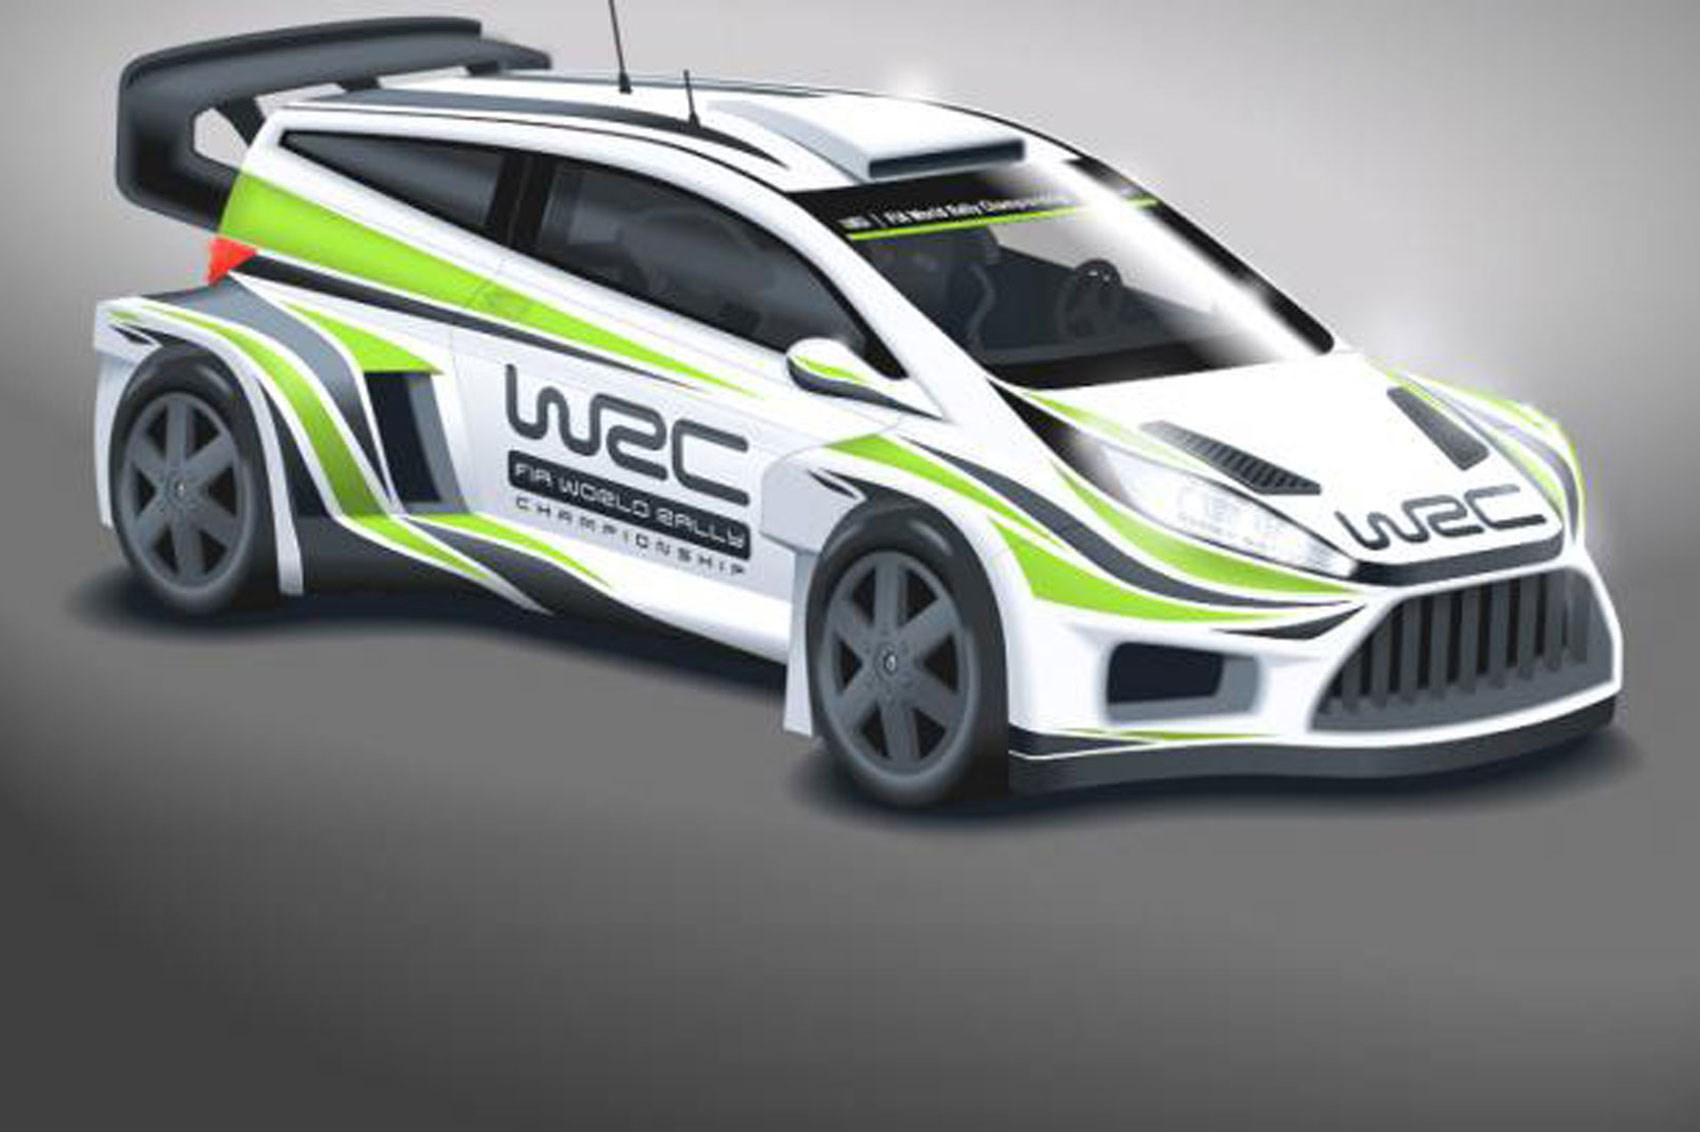 Ultrablogus  Fascinating Wild New Look For Wrc Cars In  By Car Magazine With Inspiring Wrc Cars Will Get Wider Bodies Bigger Wings And More Power For  With Comely Roll Royce Phantom Interior Also Phantom Interior In Addition Kia Quoris Interior And Chrysler Ypsilon Interior As Well As Interior Look Additionally Kia Sportage Interior From Carmagazinecouk With Ultrablogus  Inspiring Wild New Look For Wrc Cars In  By Car Magazine With Comely Wrc Cars Will Get Wider Bodies Bigger Wings And More Power For  And Fascinating Roll Royce Phantom Interior Also Phantom Interior In Addition Kia Quoris Interior From Carmagazinecouk